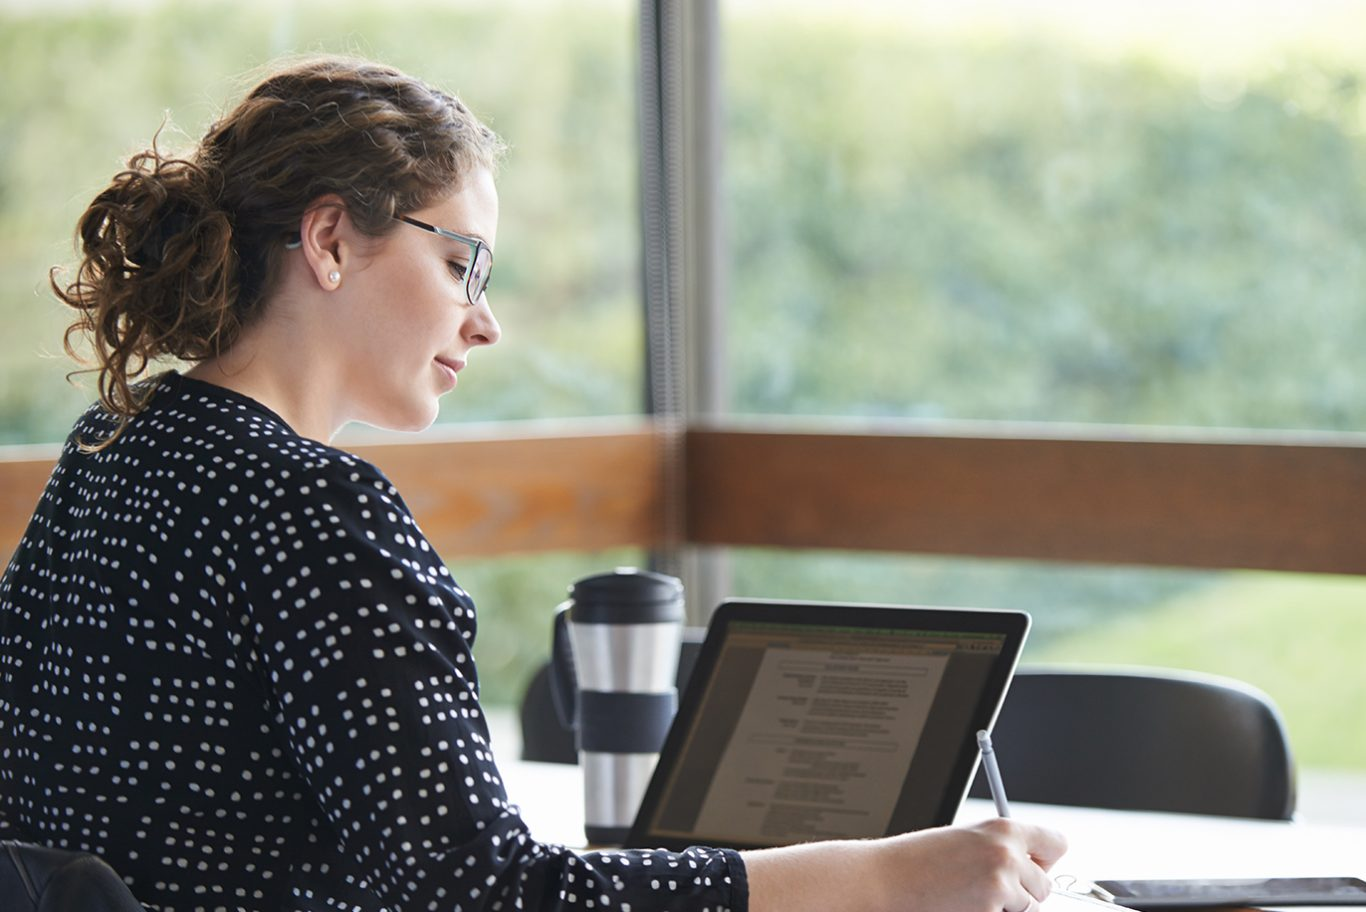 Woman sat at her desk, reading training documents and making notes.